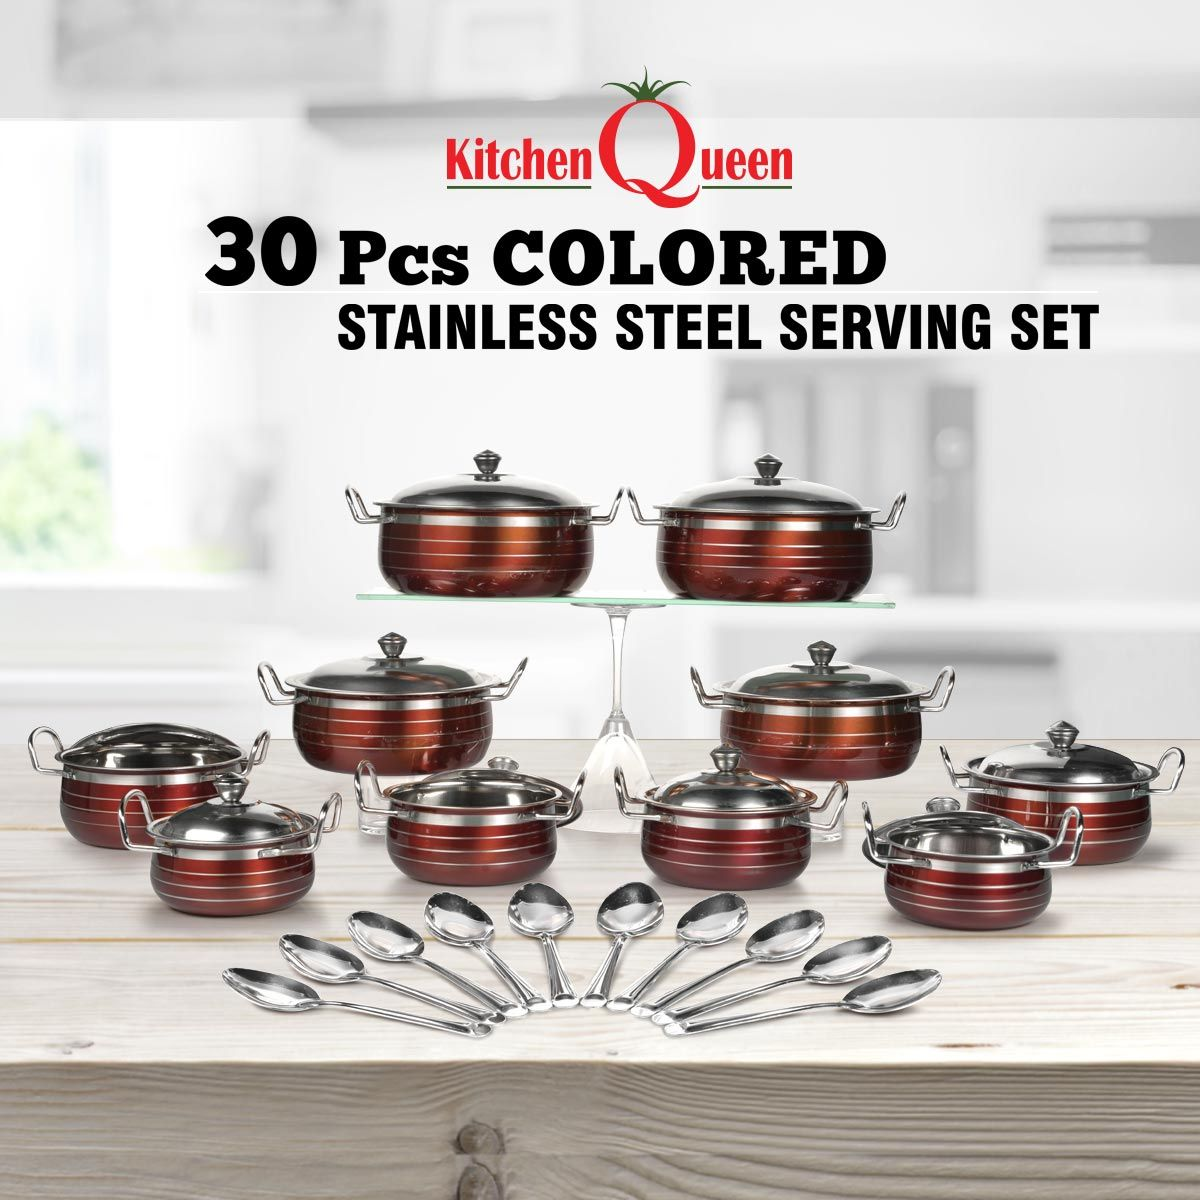 Buy 30 Pcs Colored Stainless Steel Serving Set Online At Best Price